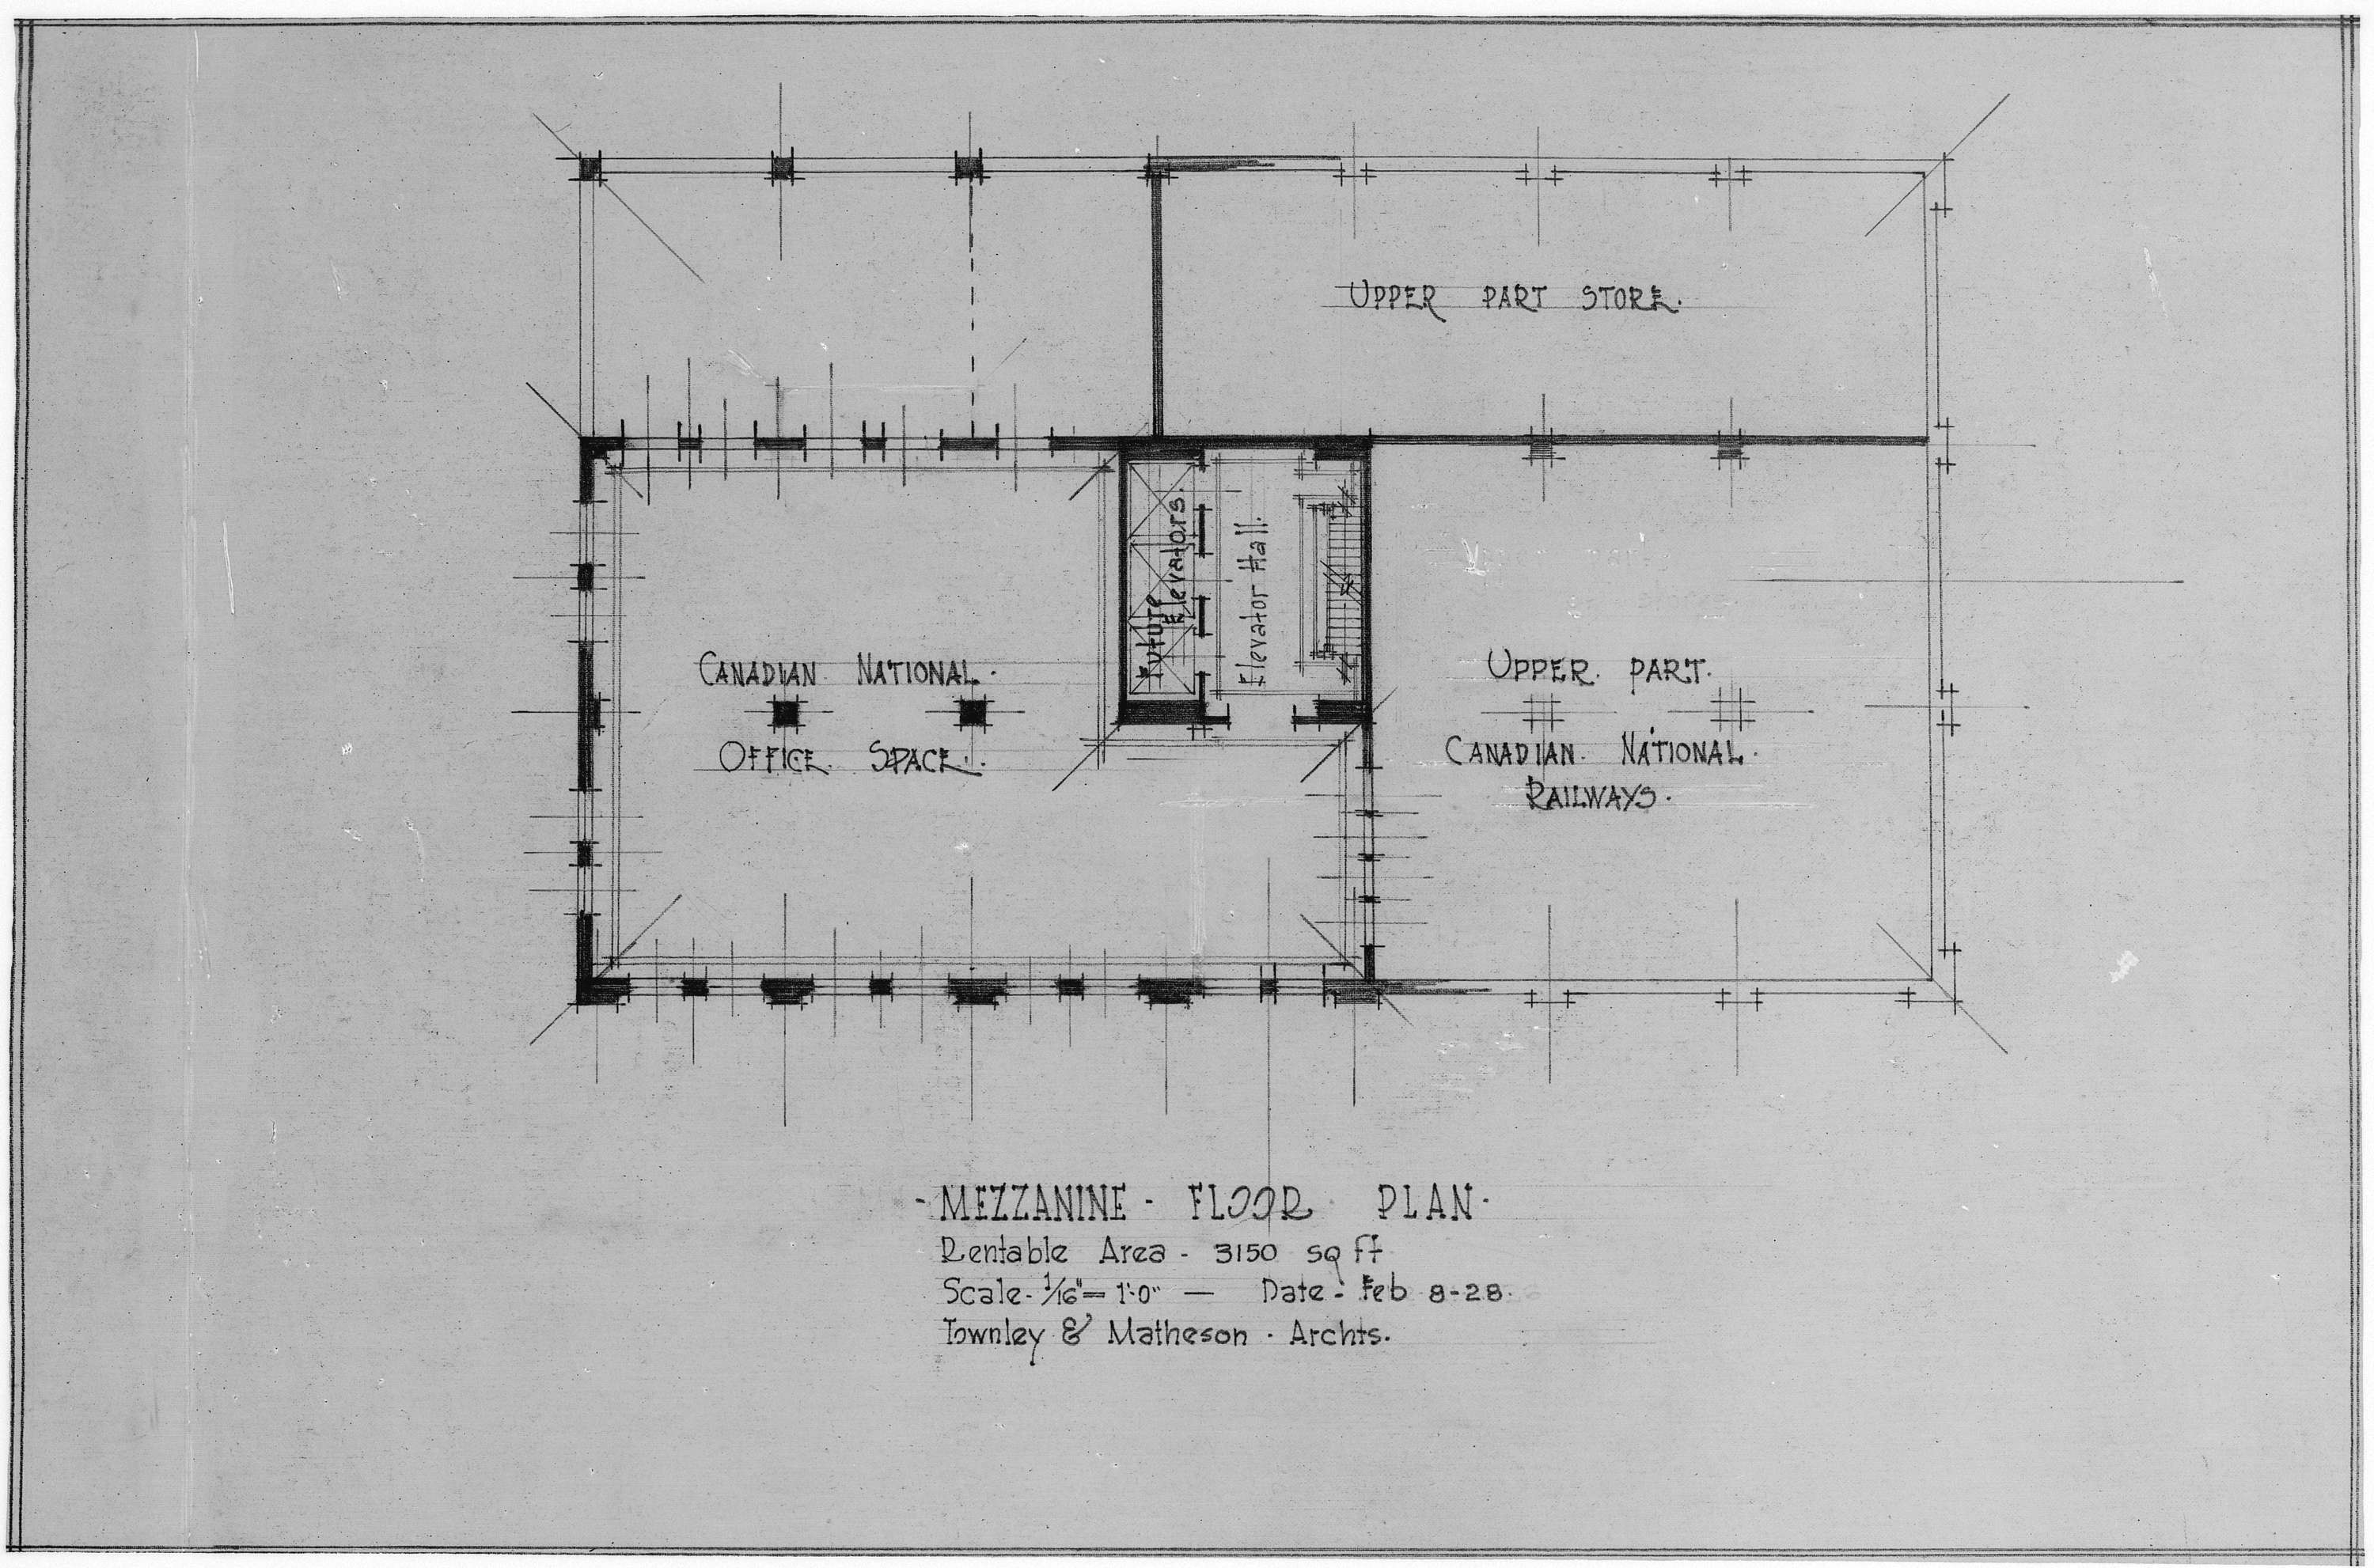 photograph of drawing for building at georgia st granville st mezzanine floor plan open original digital object